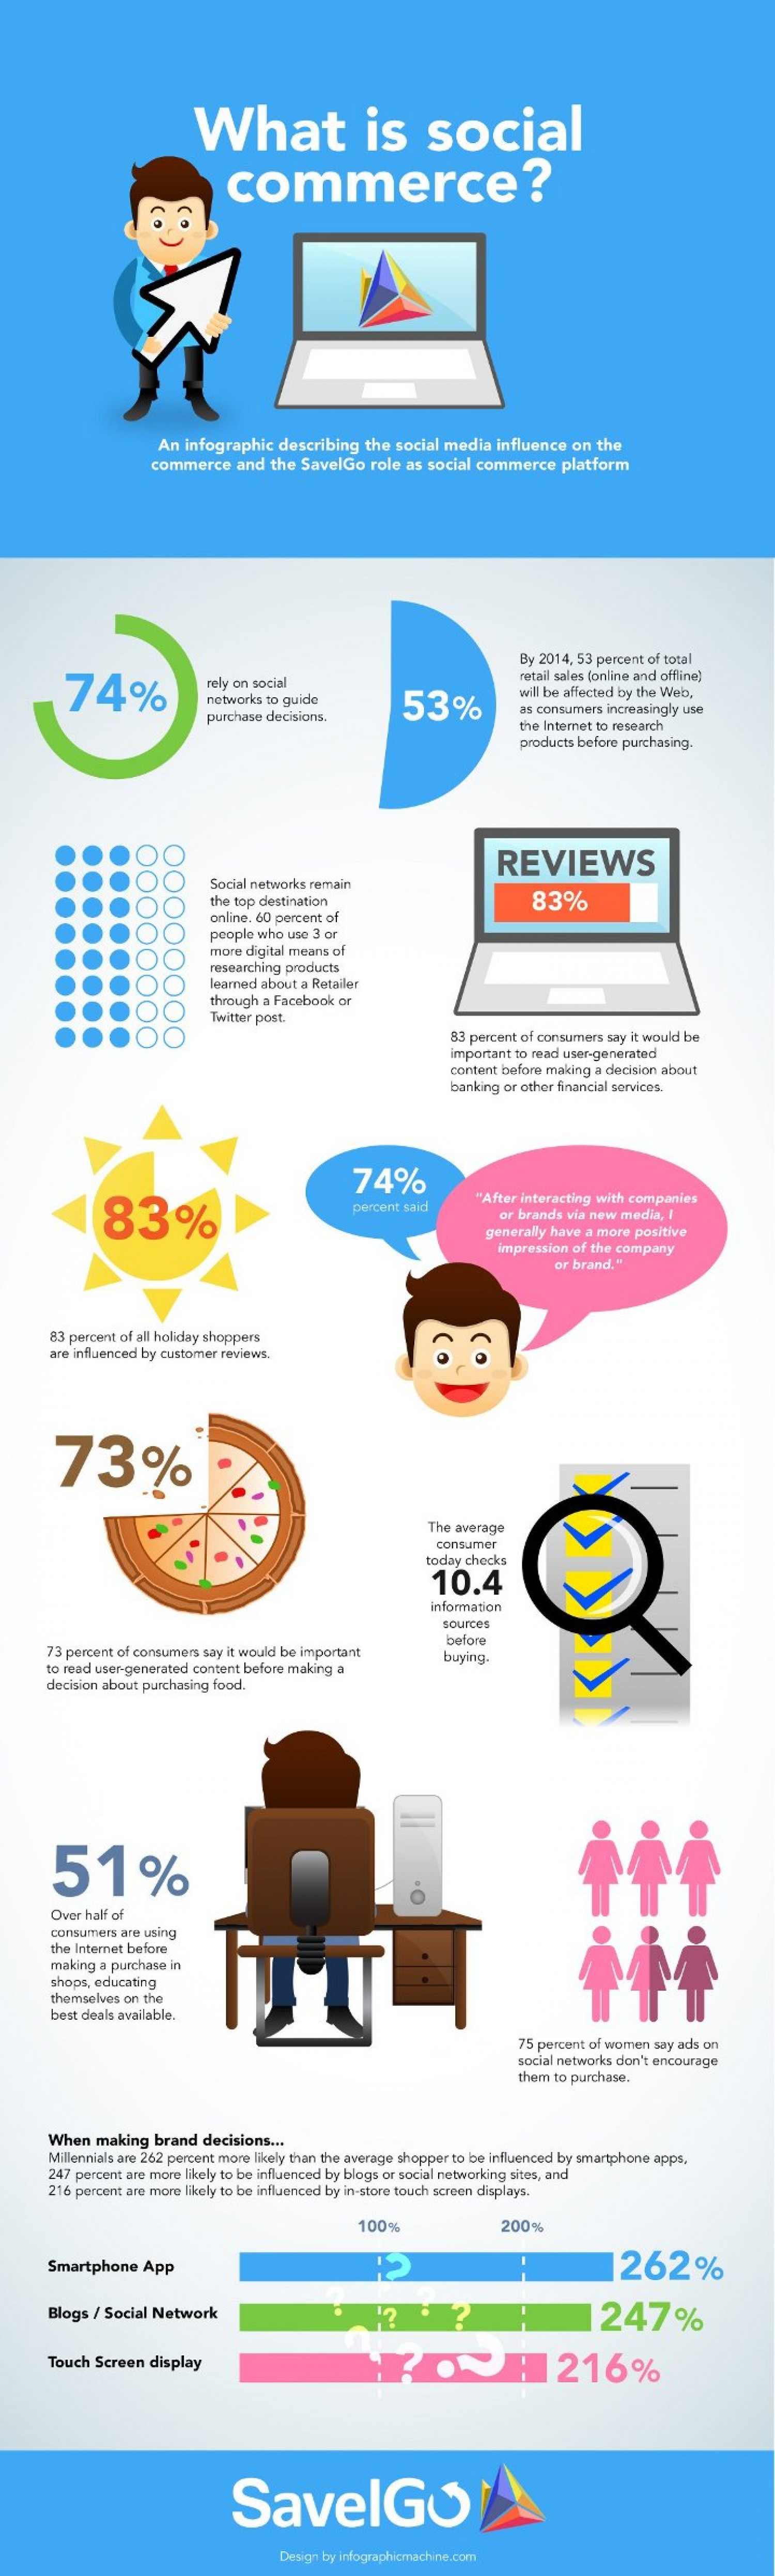 What is Social Commerce? Infographic